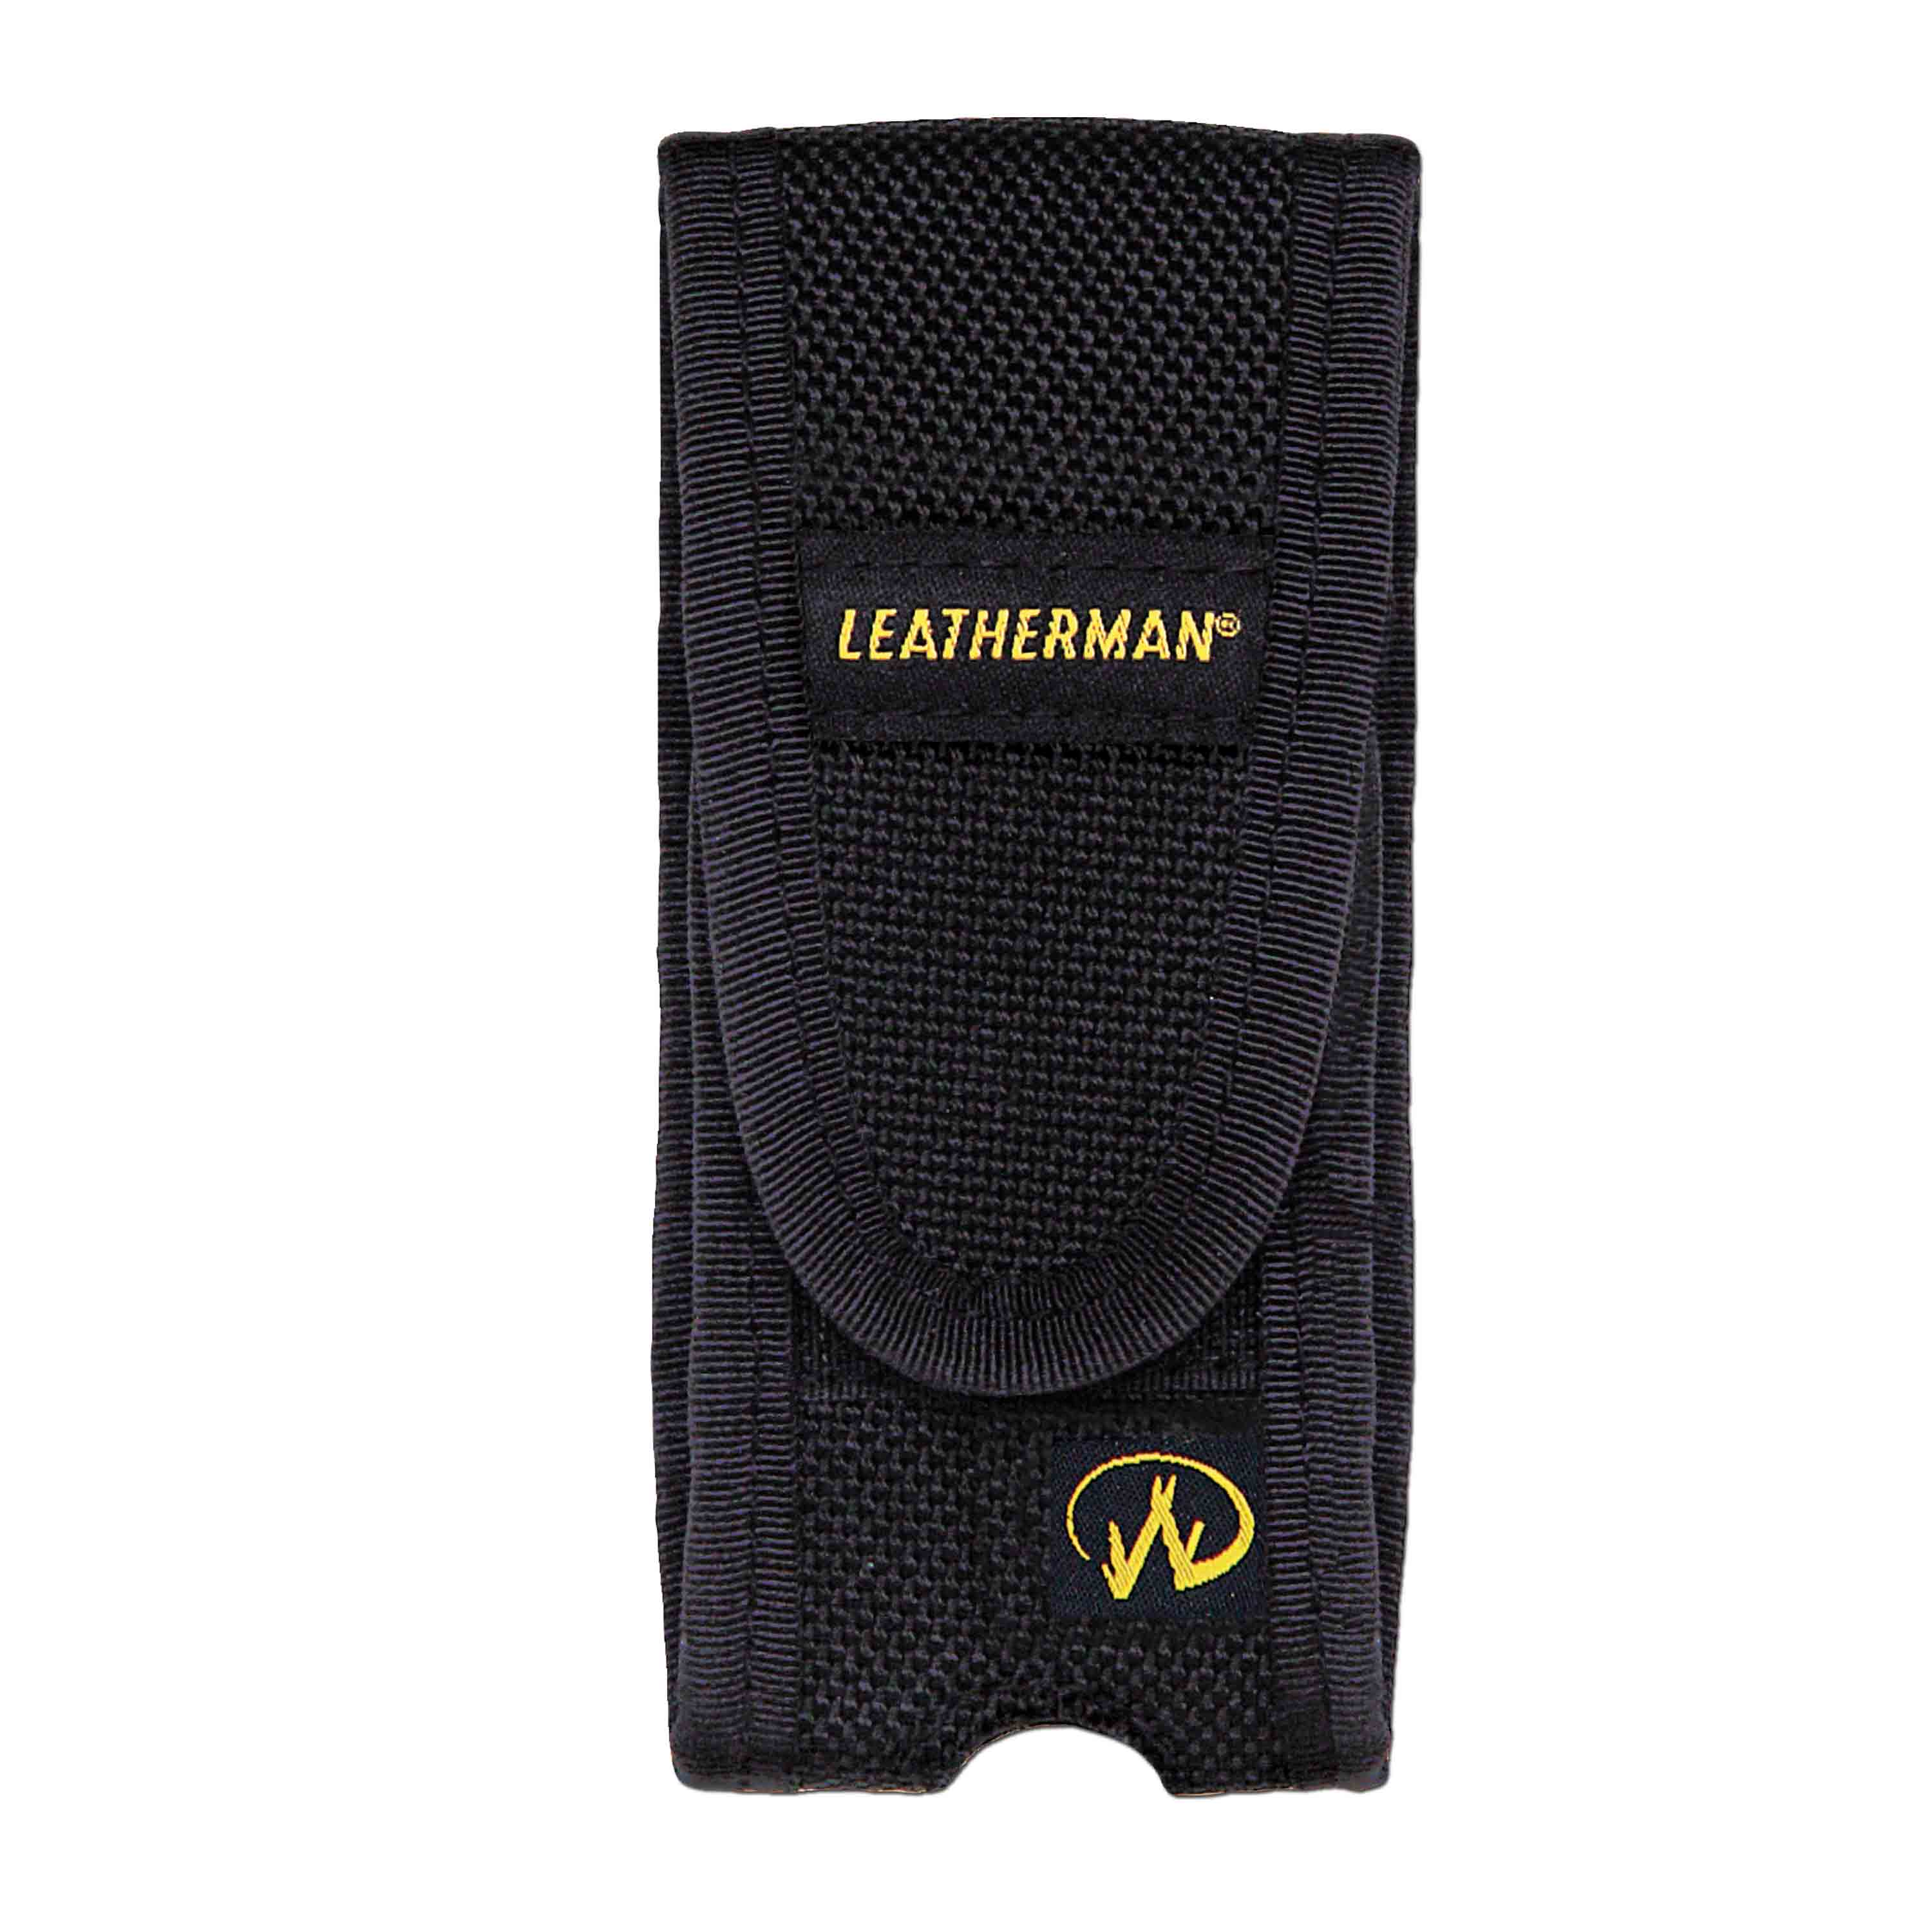 Leatherman Premium Nylon Holster II black